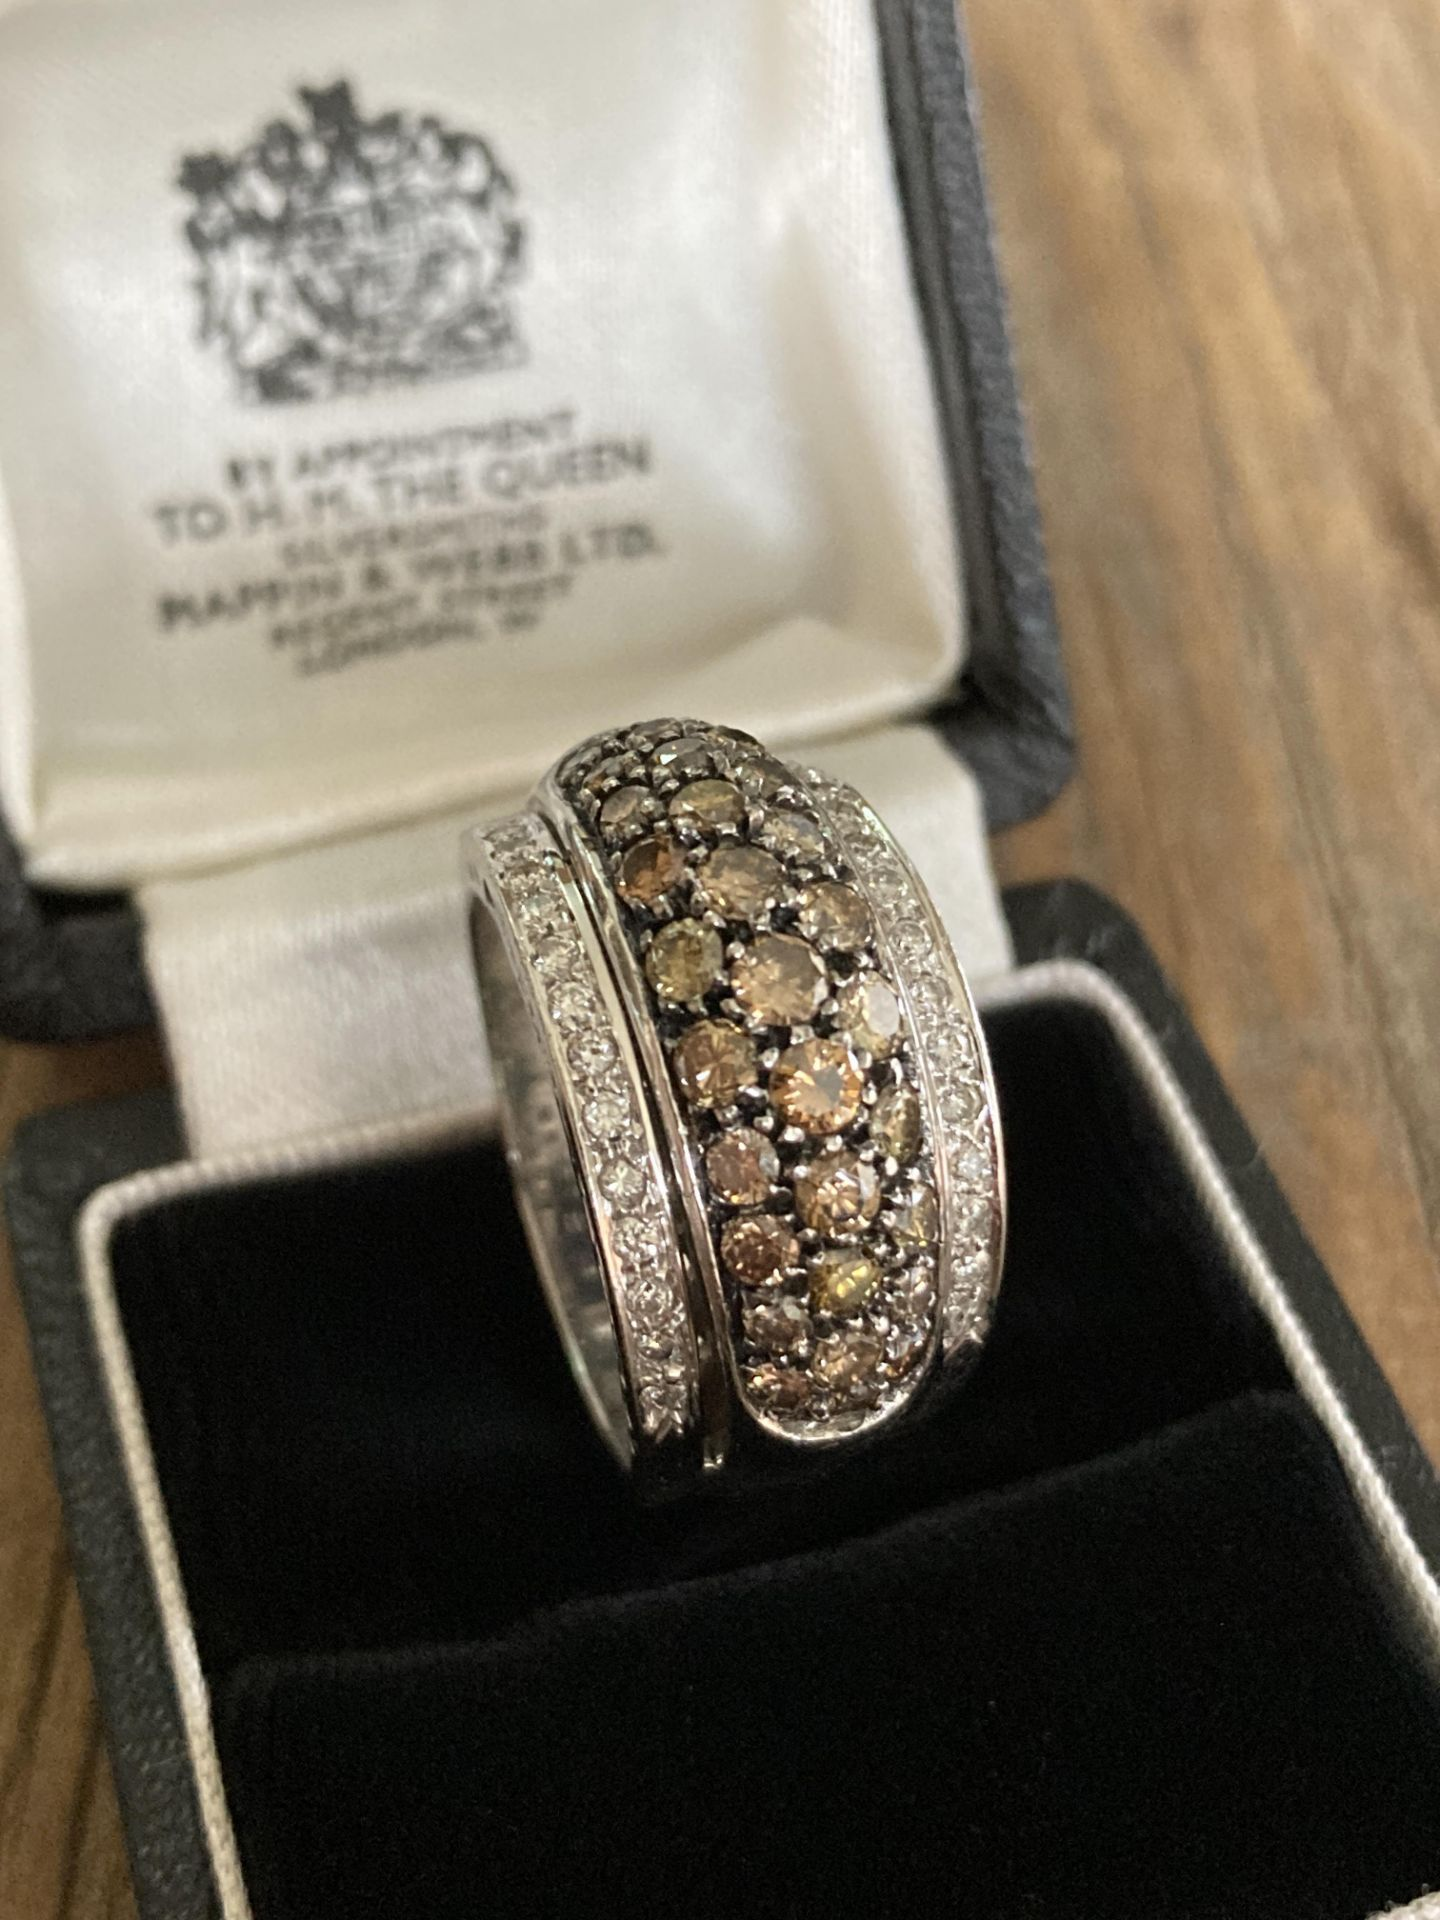 18CT WHITE GOLD 2.5CT BRILLIANT CUT DIAMOND RING (MIXED COLOUR DESIGN) - SIZE: T 1/2 / WEIGHT: 18.6G